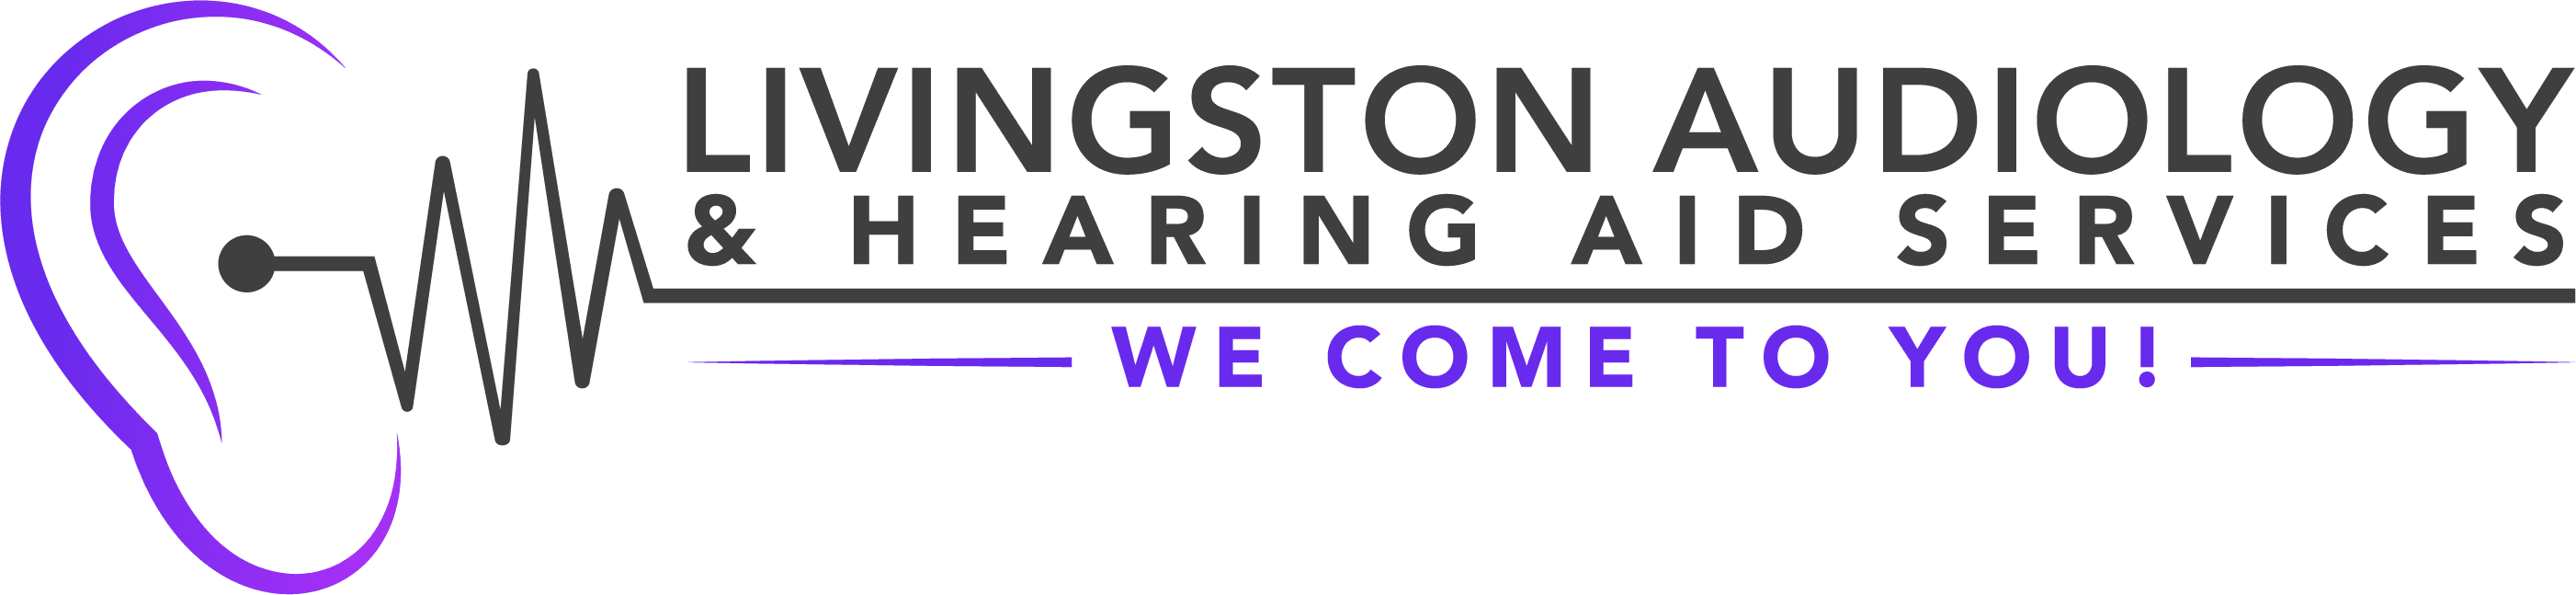 Livingston Audiology and Hearing Aid Services